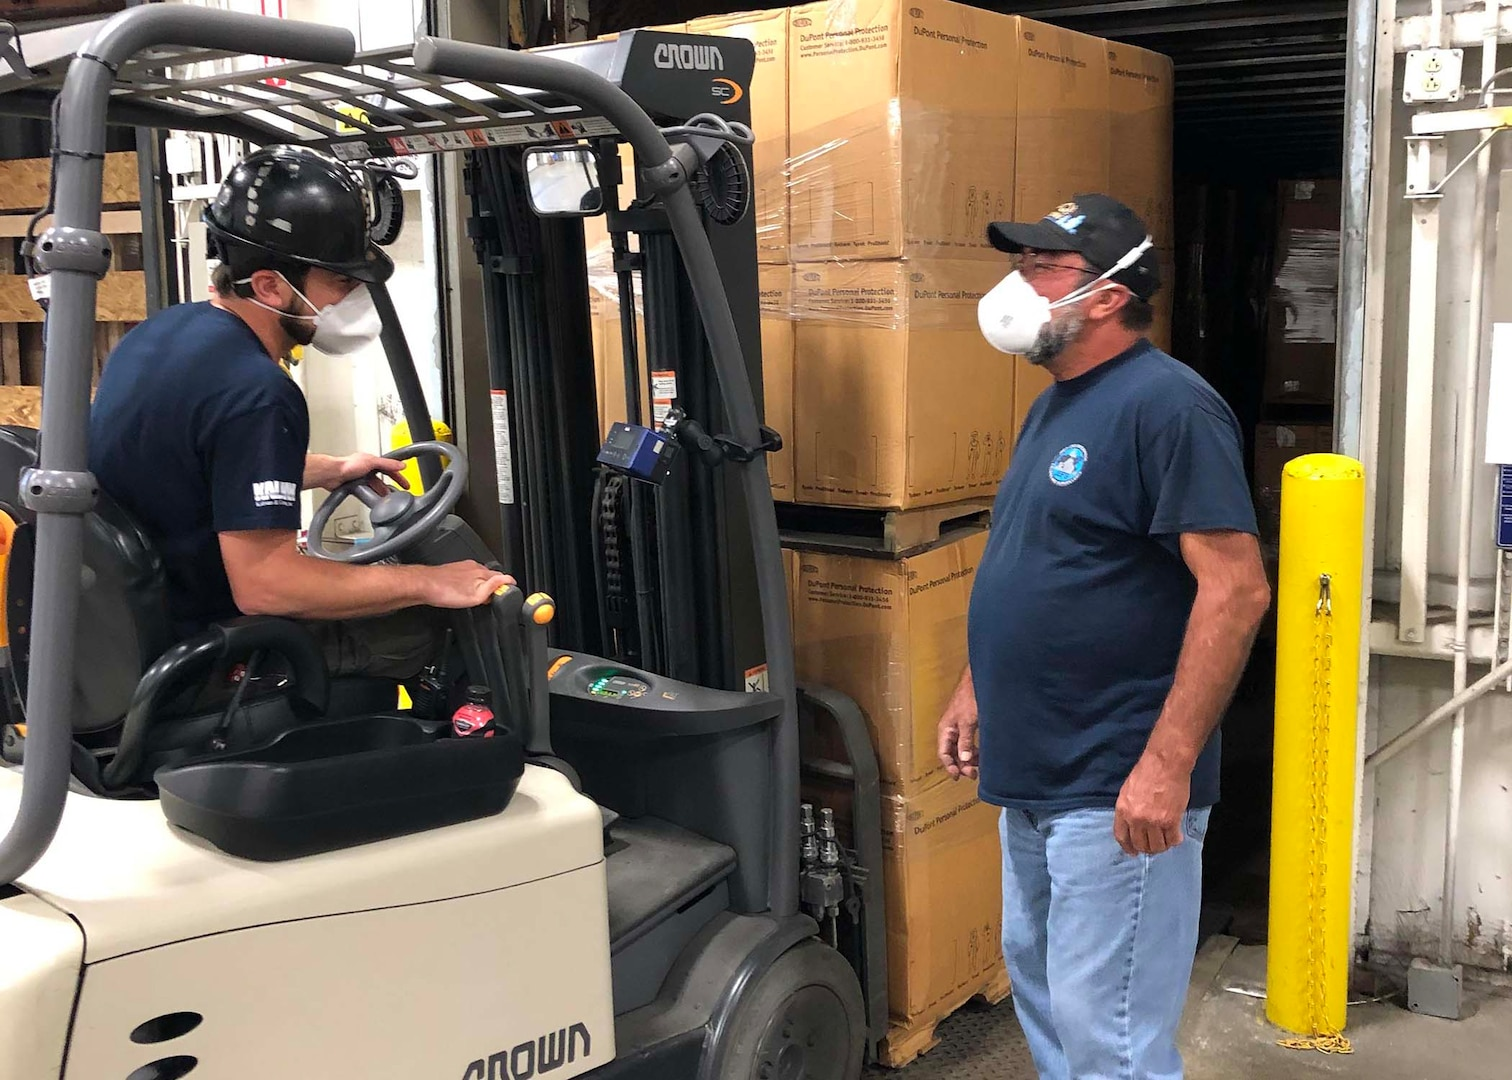 Andy McElroy, a transportation driver at Marine Corps Logistics Command, helps Shipping and Receiving Technician Christopher Leymeister (seated on forklift) with the loading of personal protective suits the command provided to the Defense Logistics Agency as part of their effort to gather supplies for the COVID-19 response.